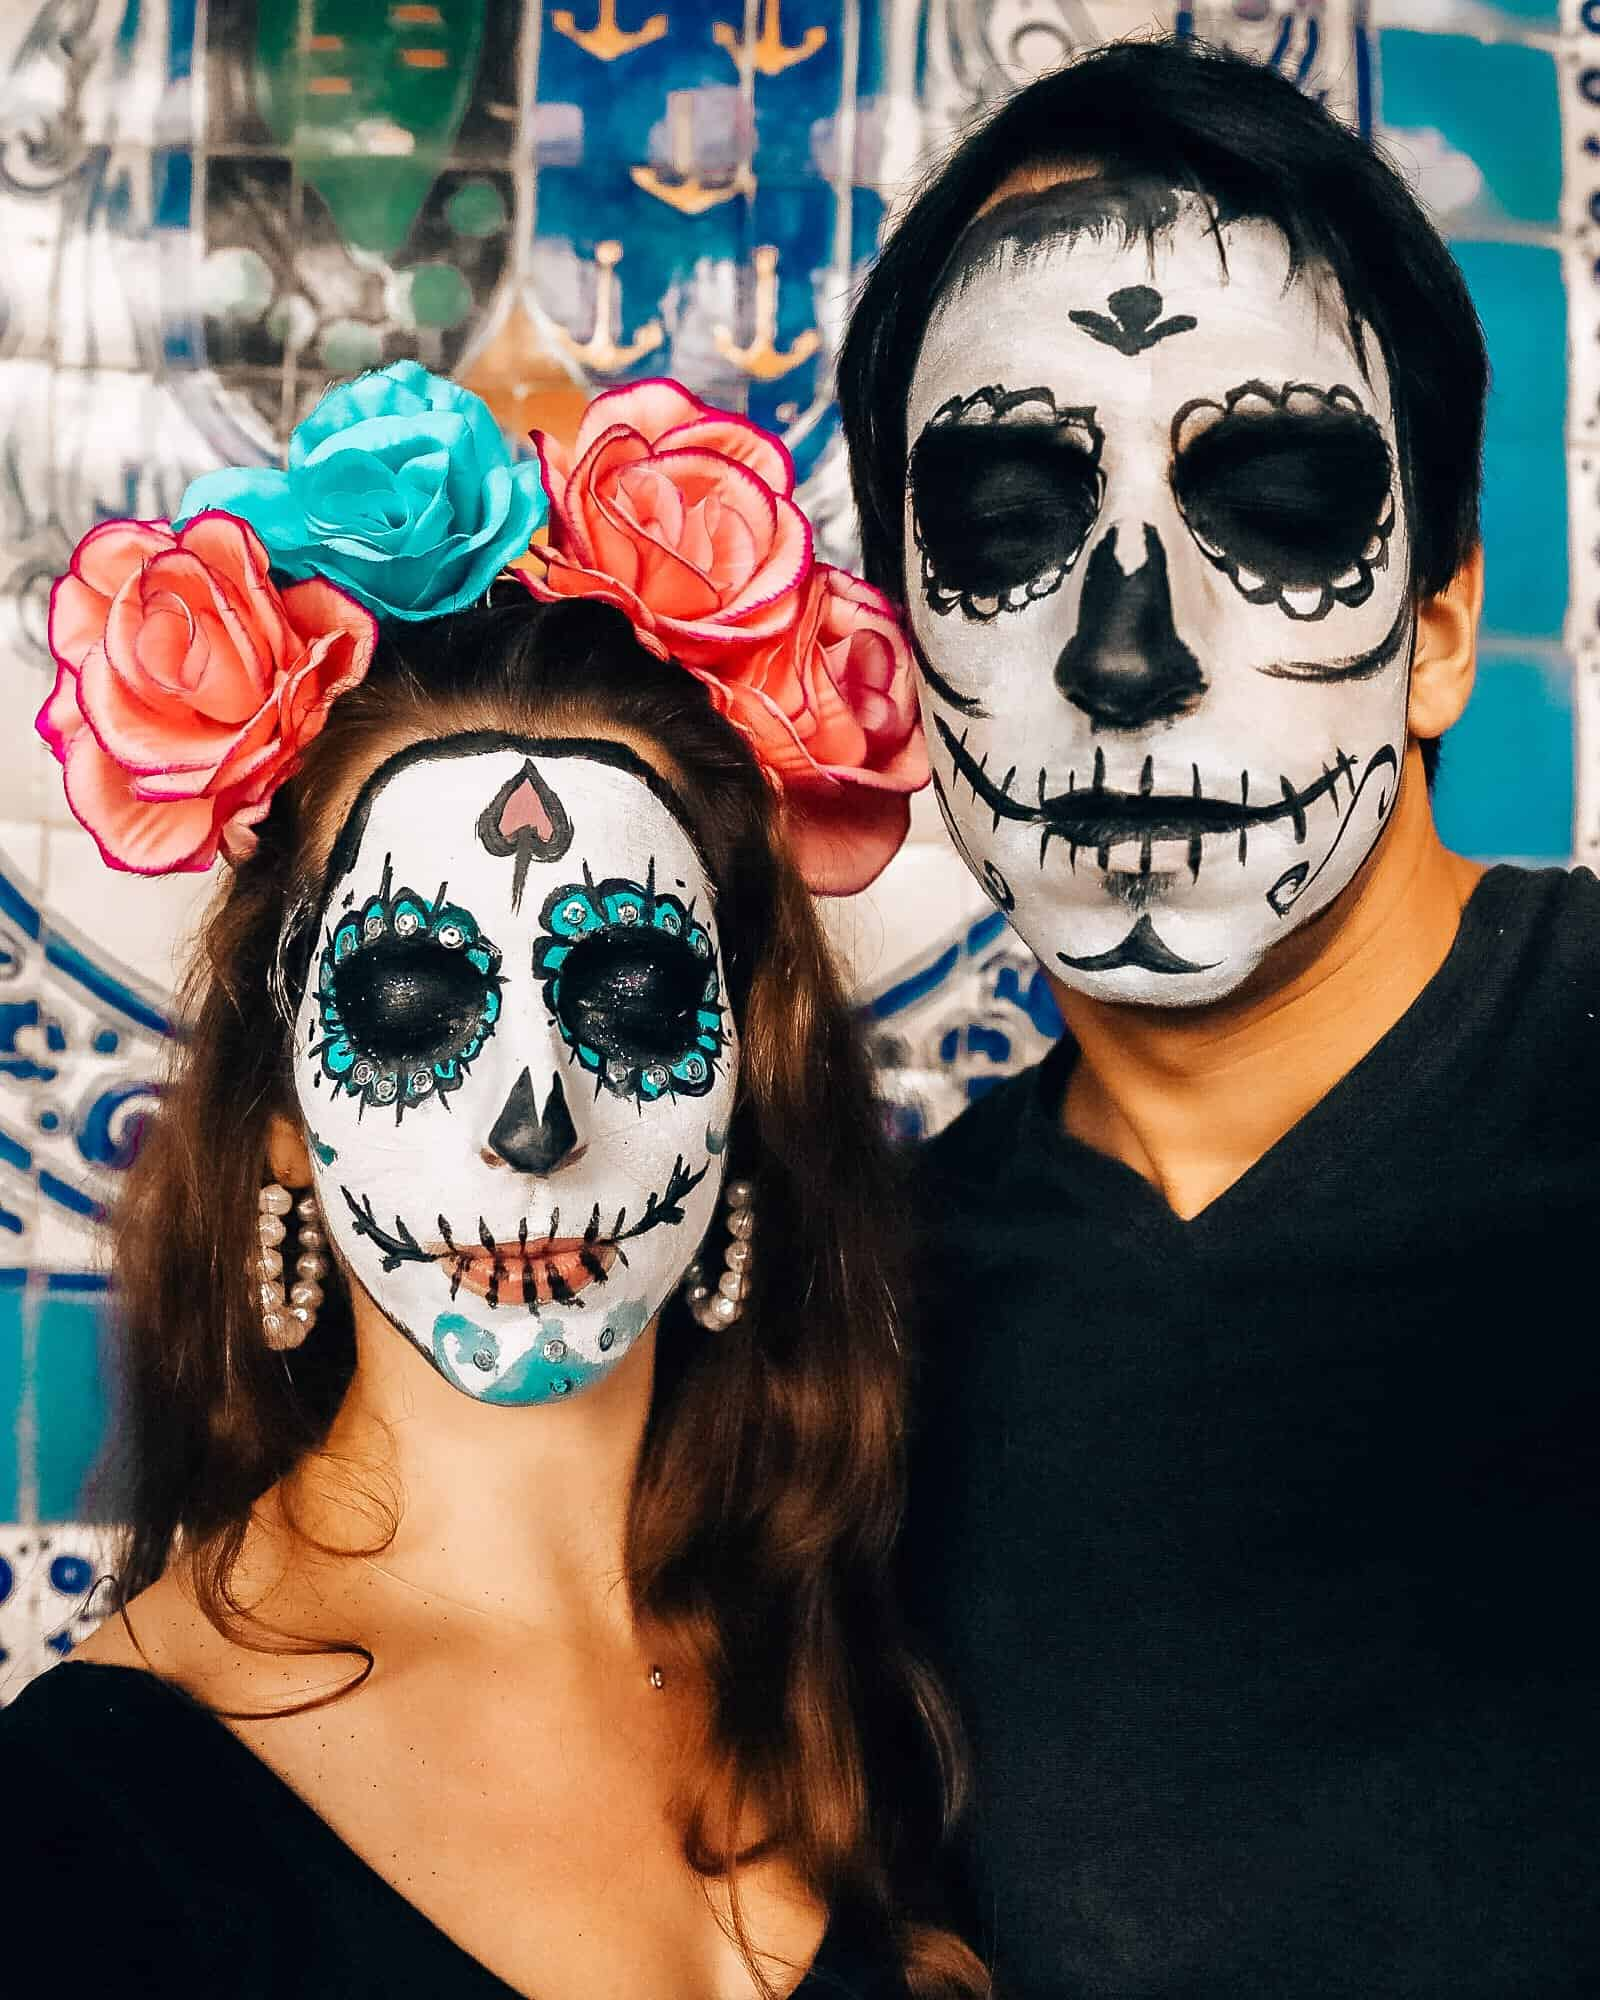 Bettina and Kyle with Day of the Dead Face Painting Mexico City